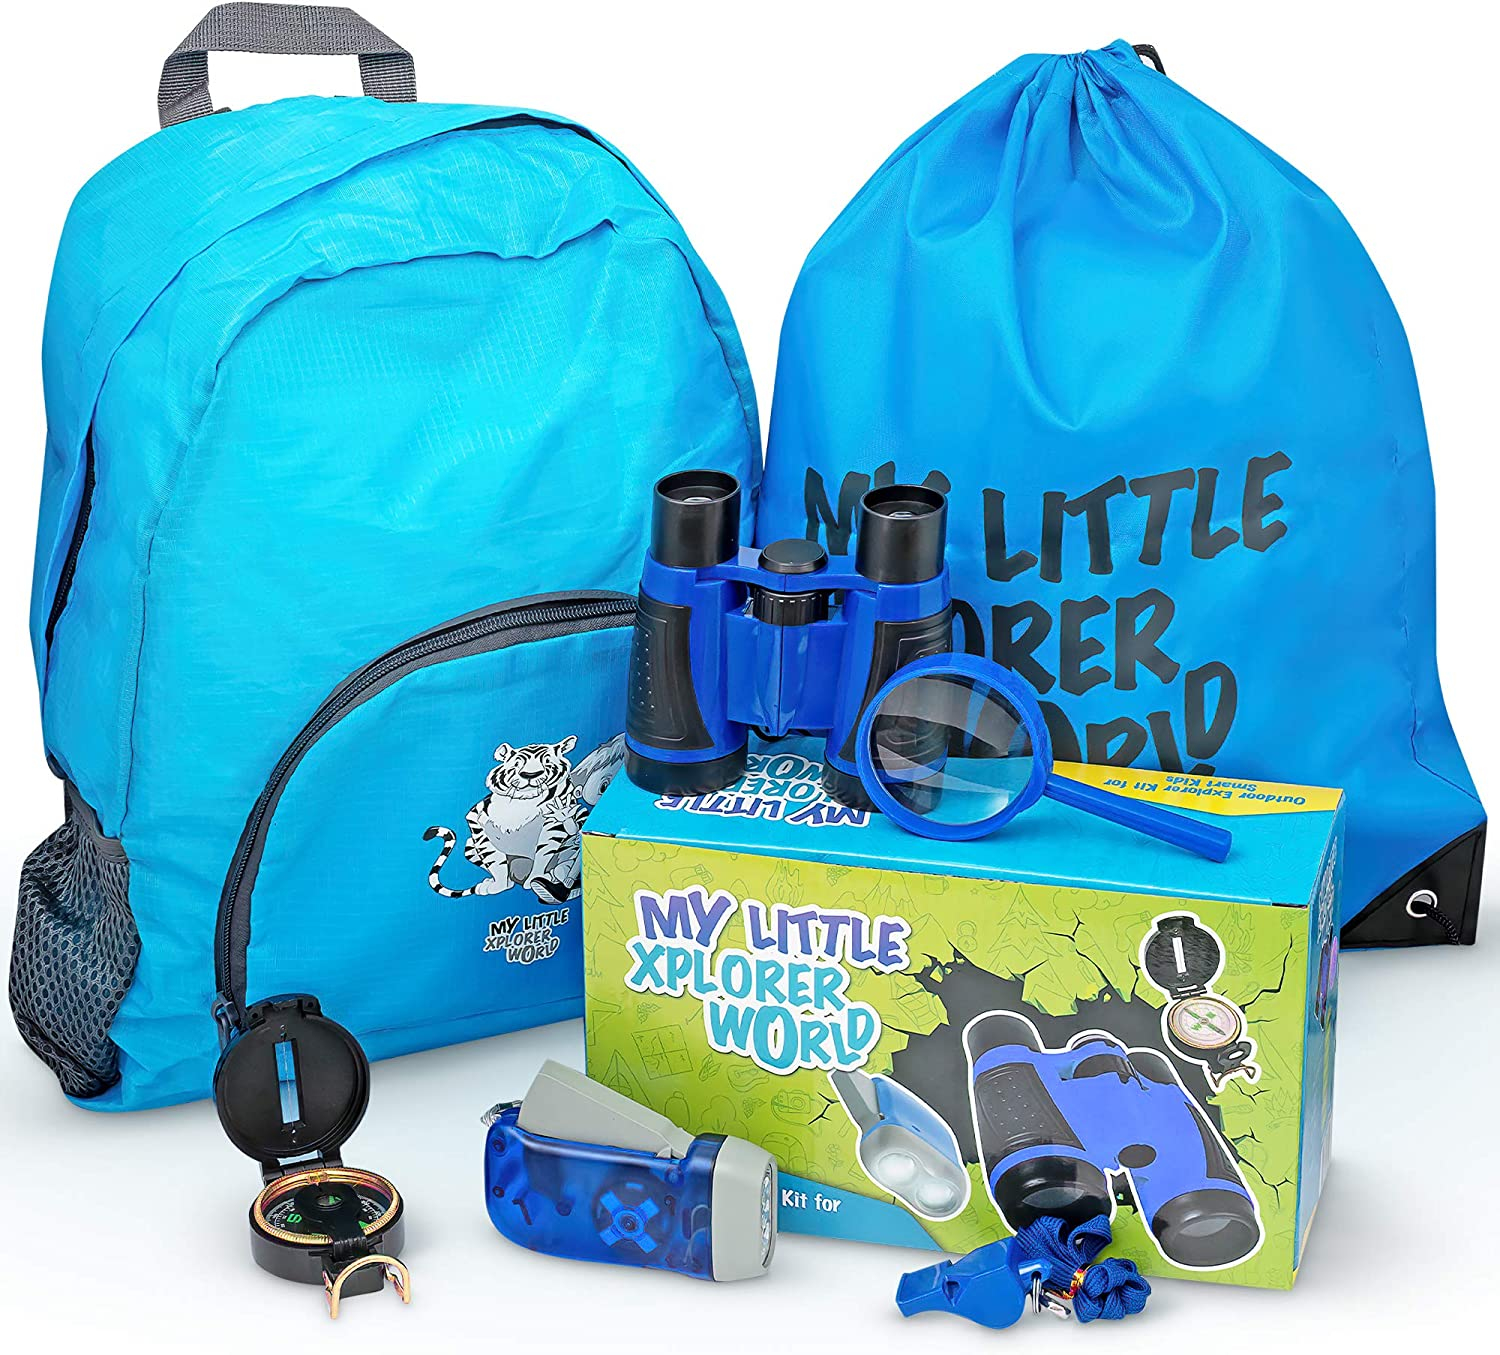 Upgraded Outdoor Exploration Kit with Toy Binoculars for Kids, Outdoor Toys include Magnifying Glass, Flashlight, Compass, Whistle, Boys / Girls Hiking Backpack, Ages 2-10, Blue